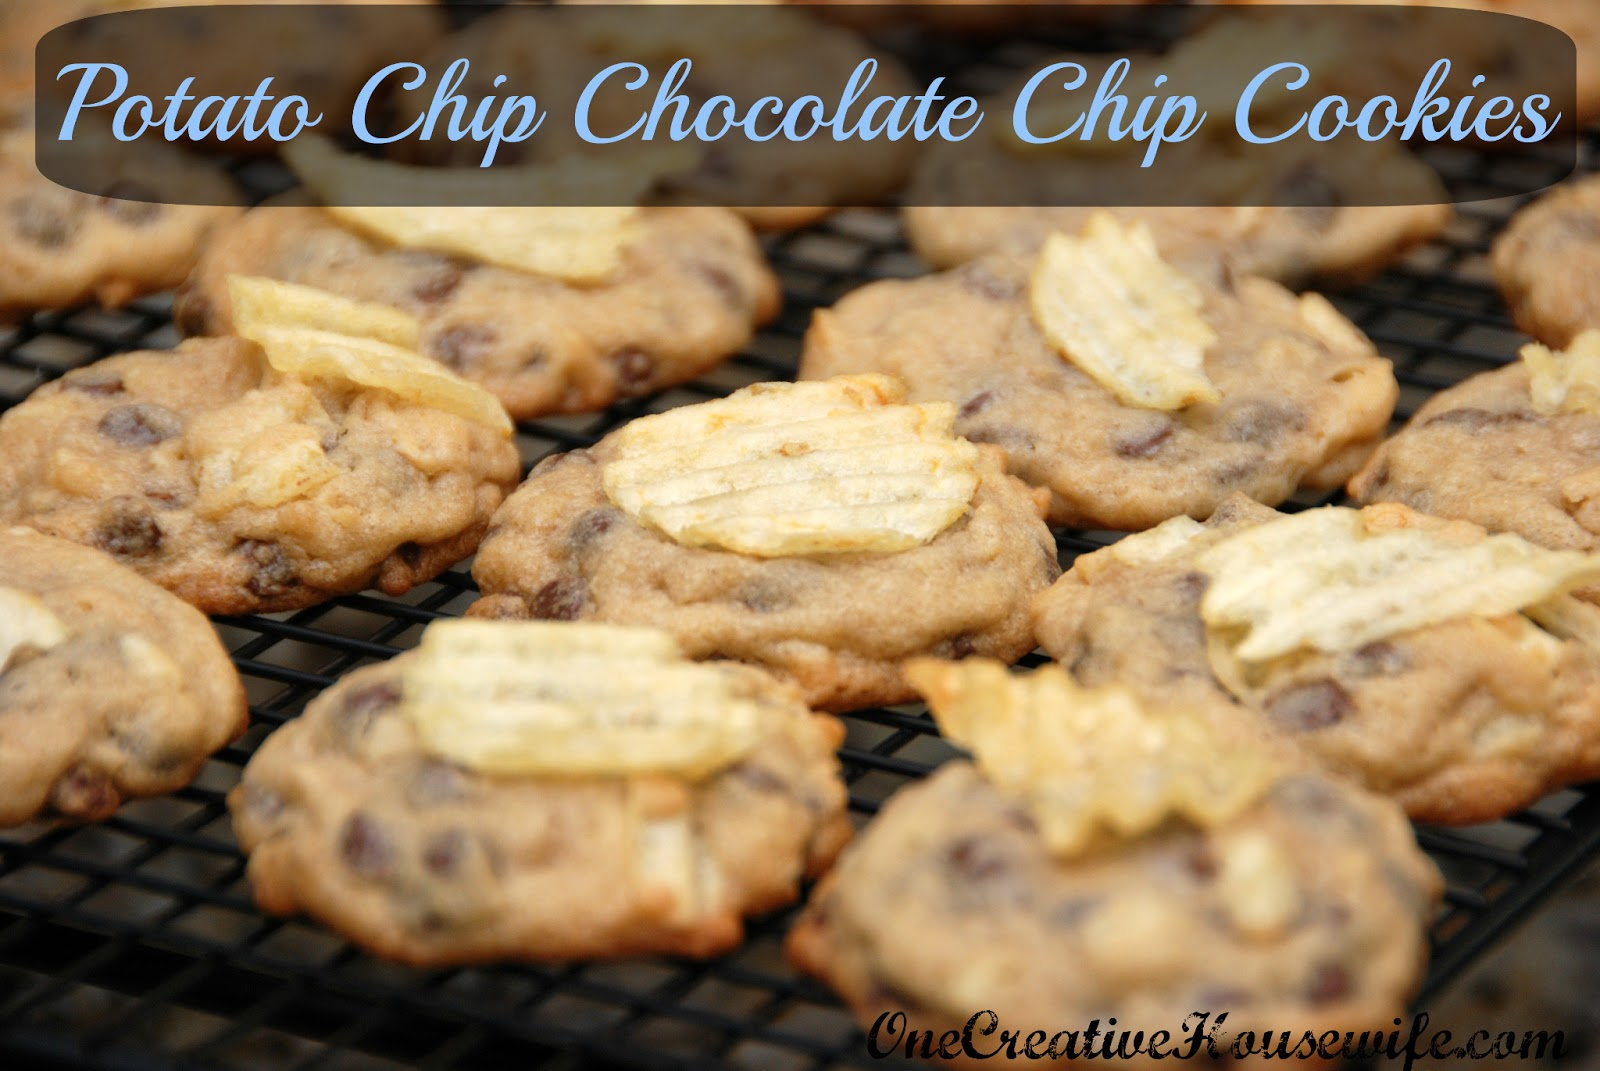 One Creative Housewife: Potato Chip Chocolate Chip Cookies